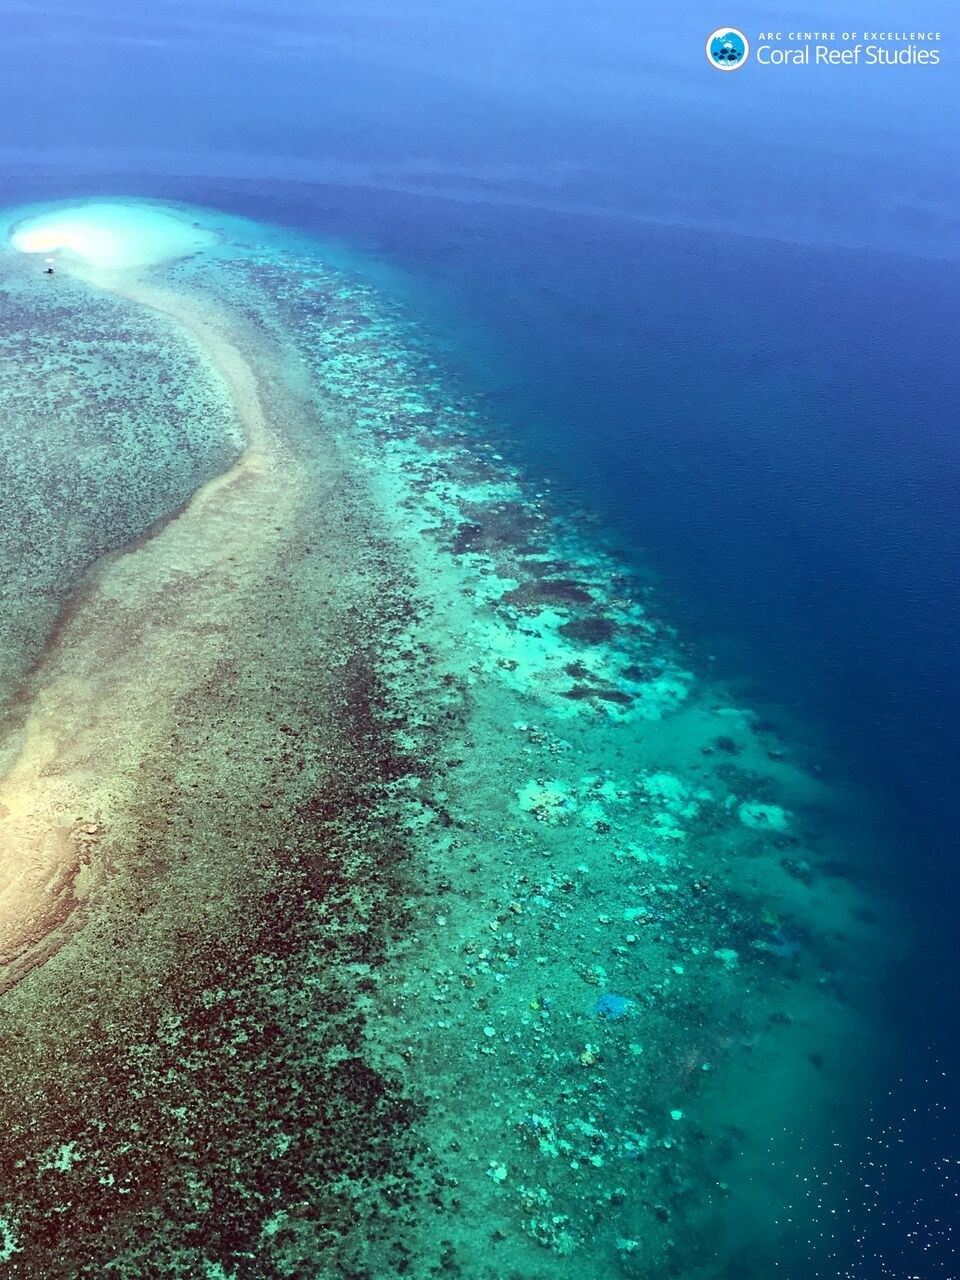 Aerial view of the bleached coral on the Great Barrier Reef